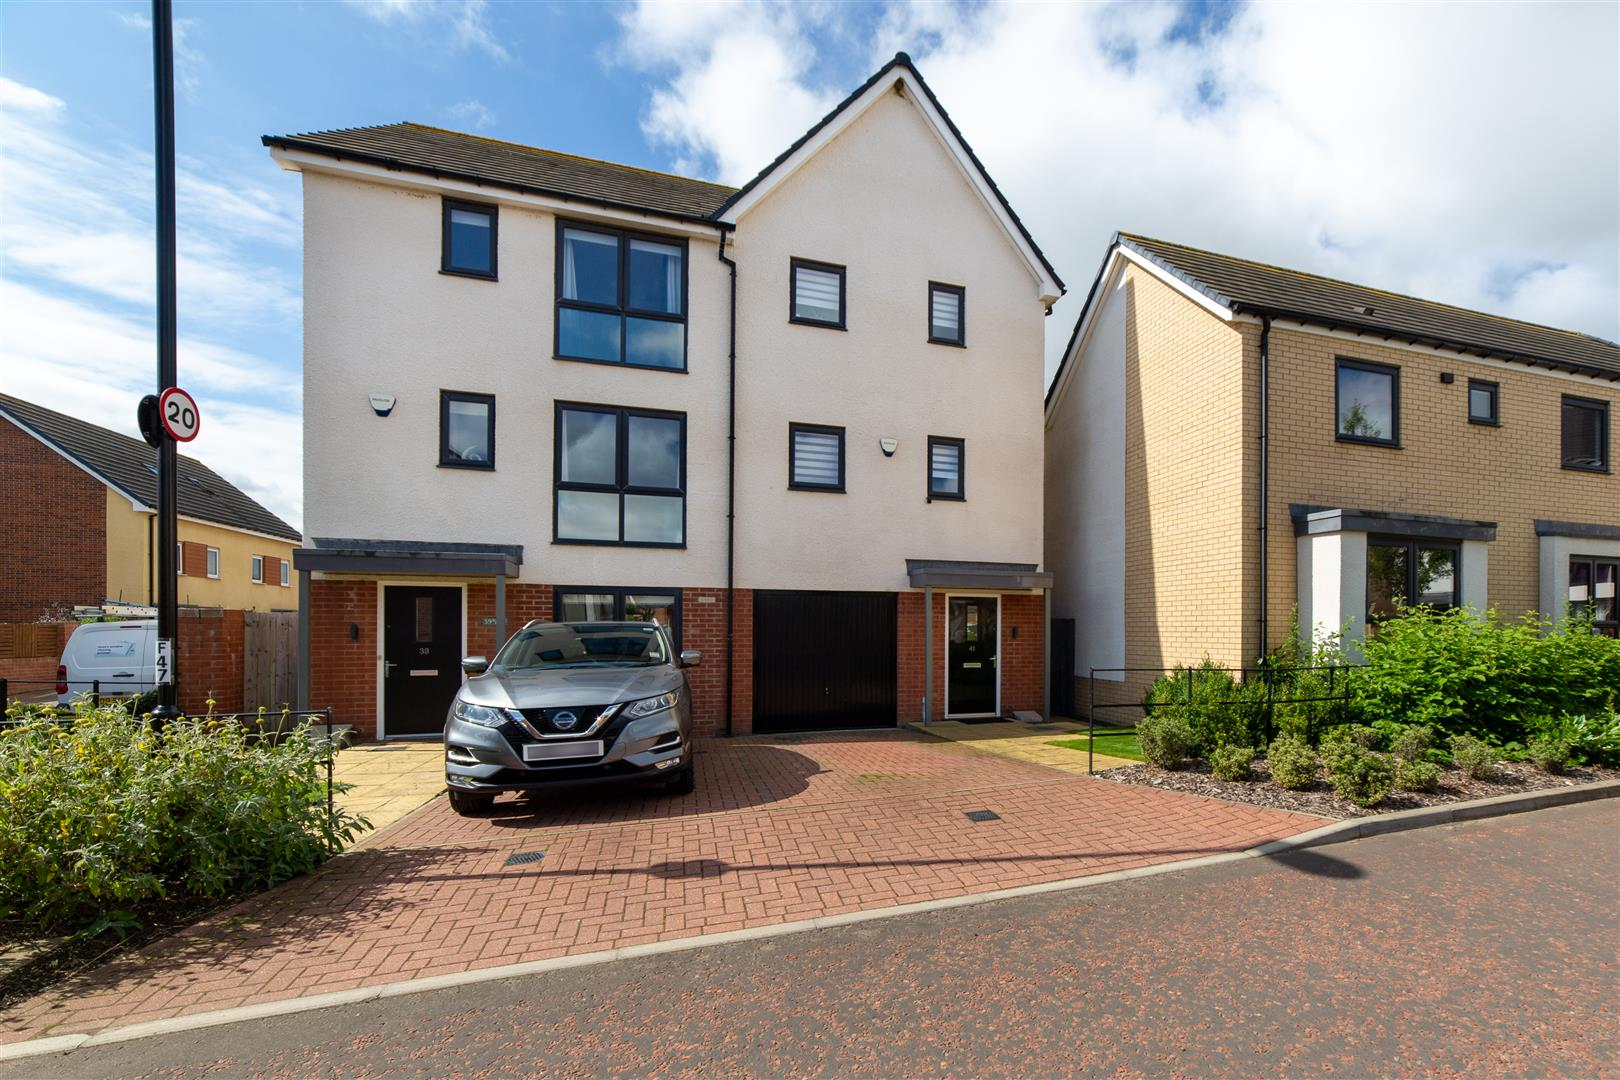 3 bed town house for sale in Elemore Close, Newcastle Upon Tyne, NE13